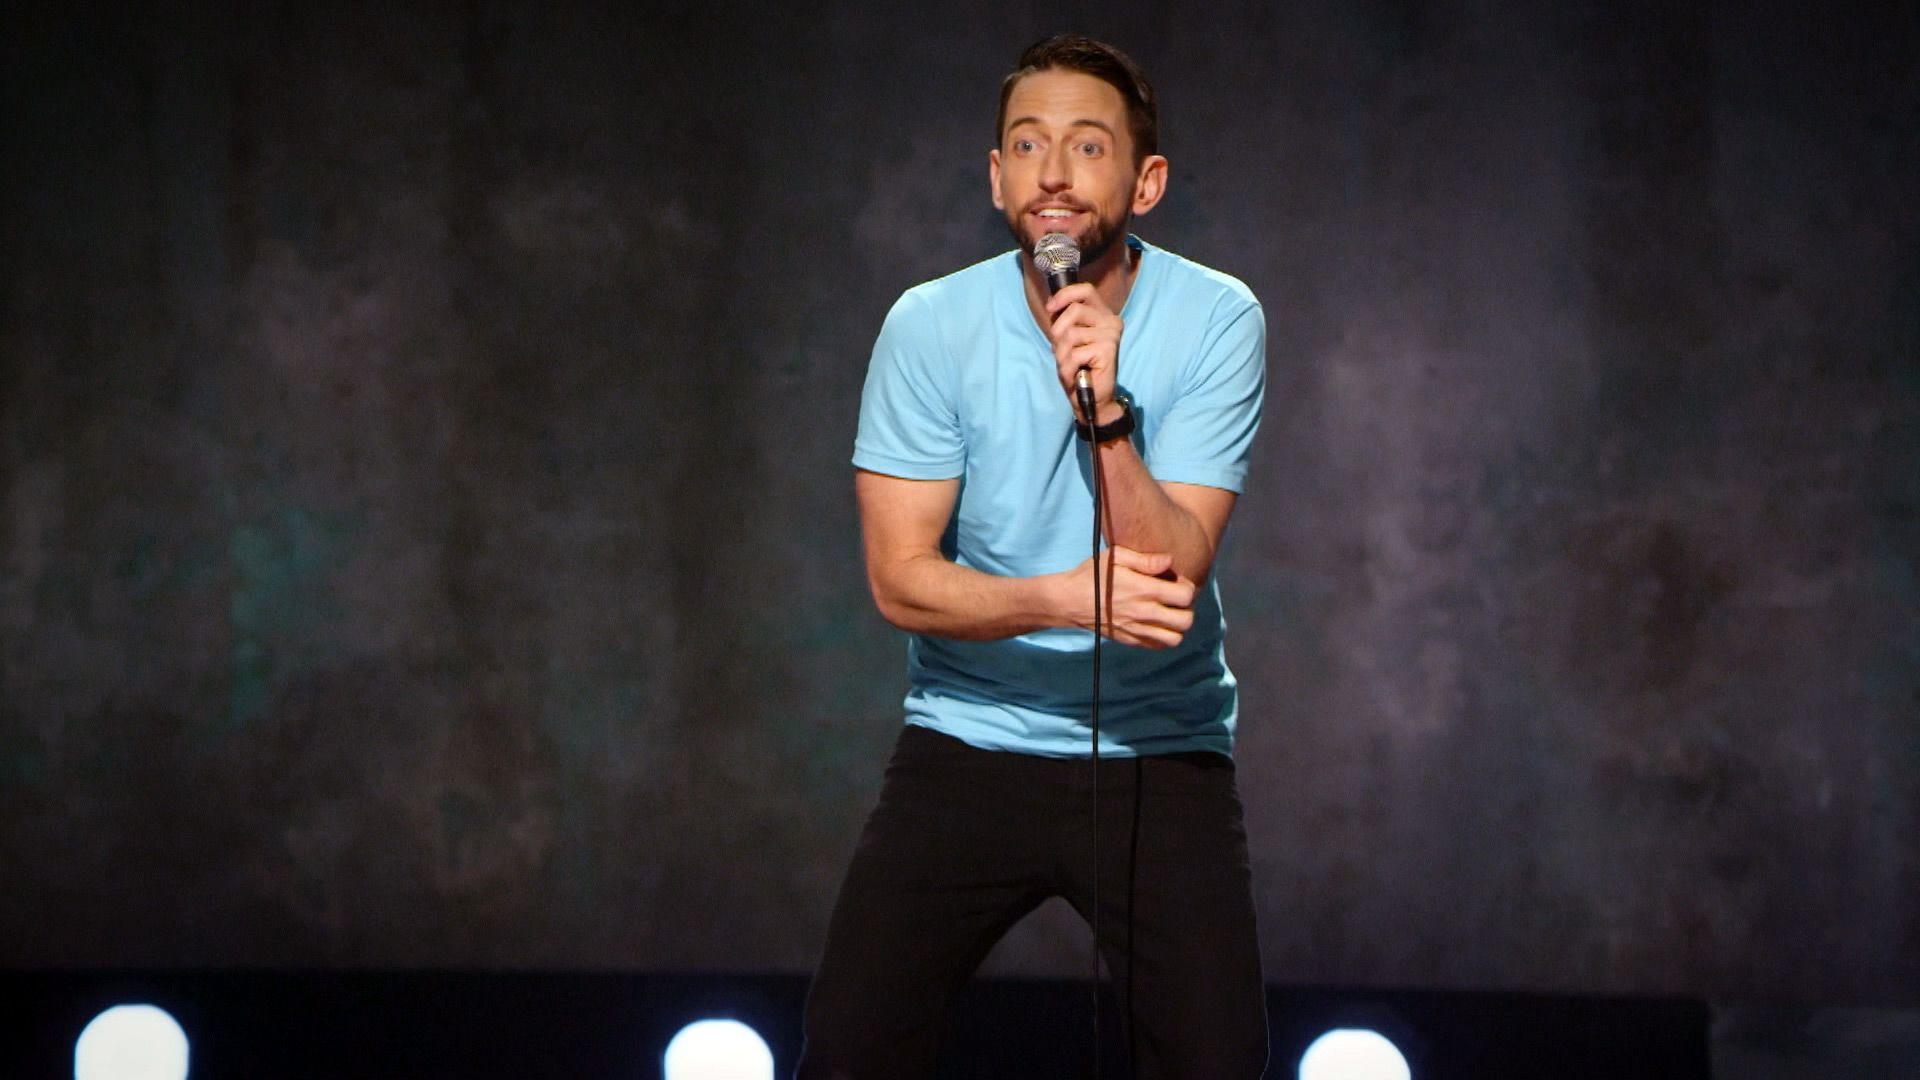 Neal Brennan - Gay Club - Neal Brennan Women And Black -3271